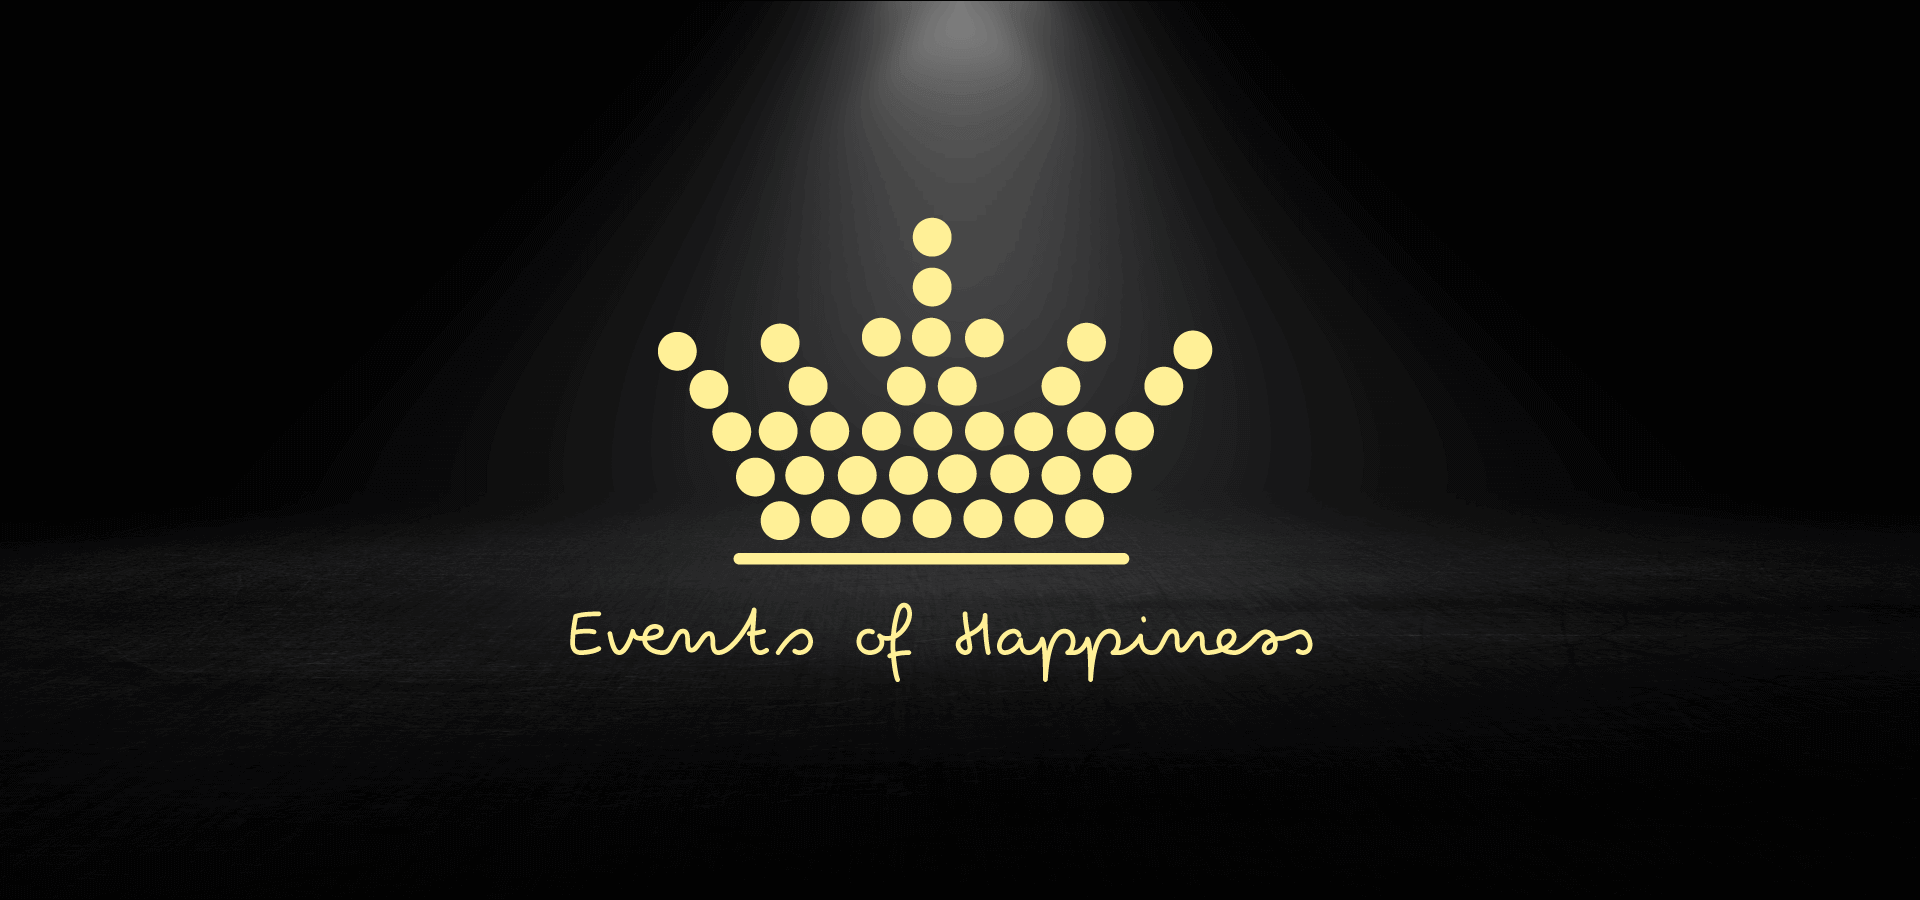 Branding for Events of Happiness